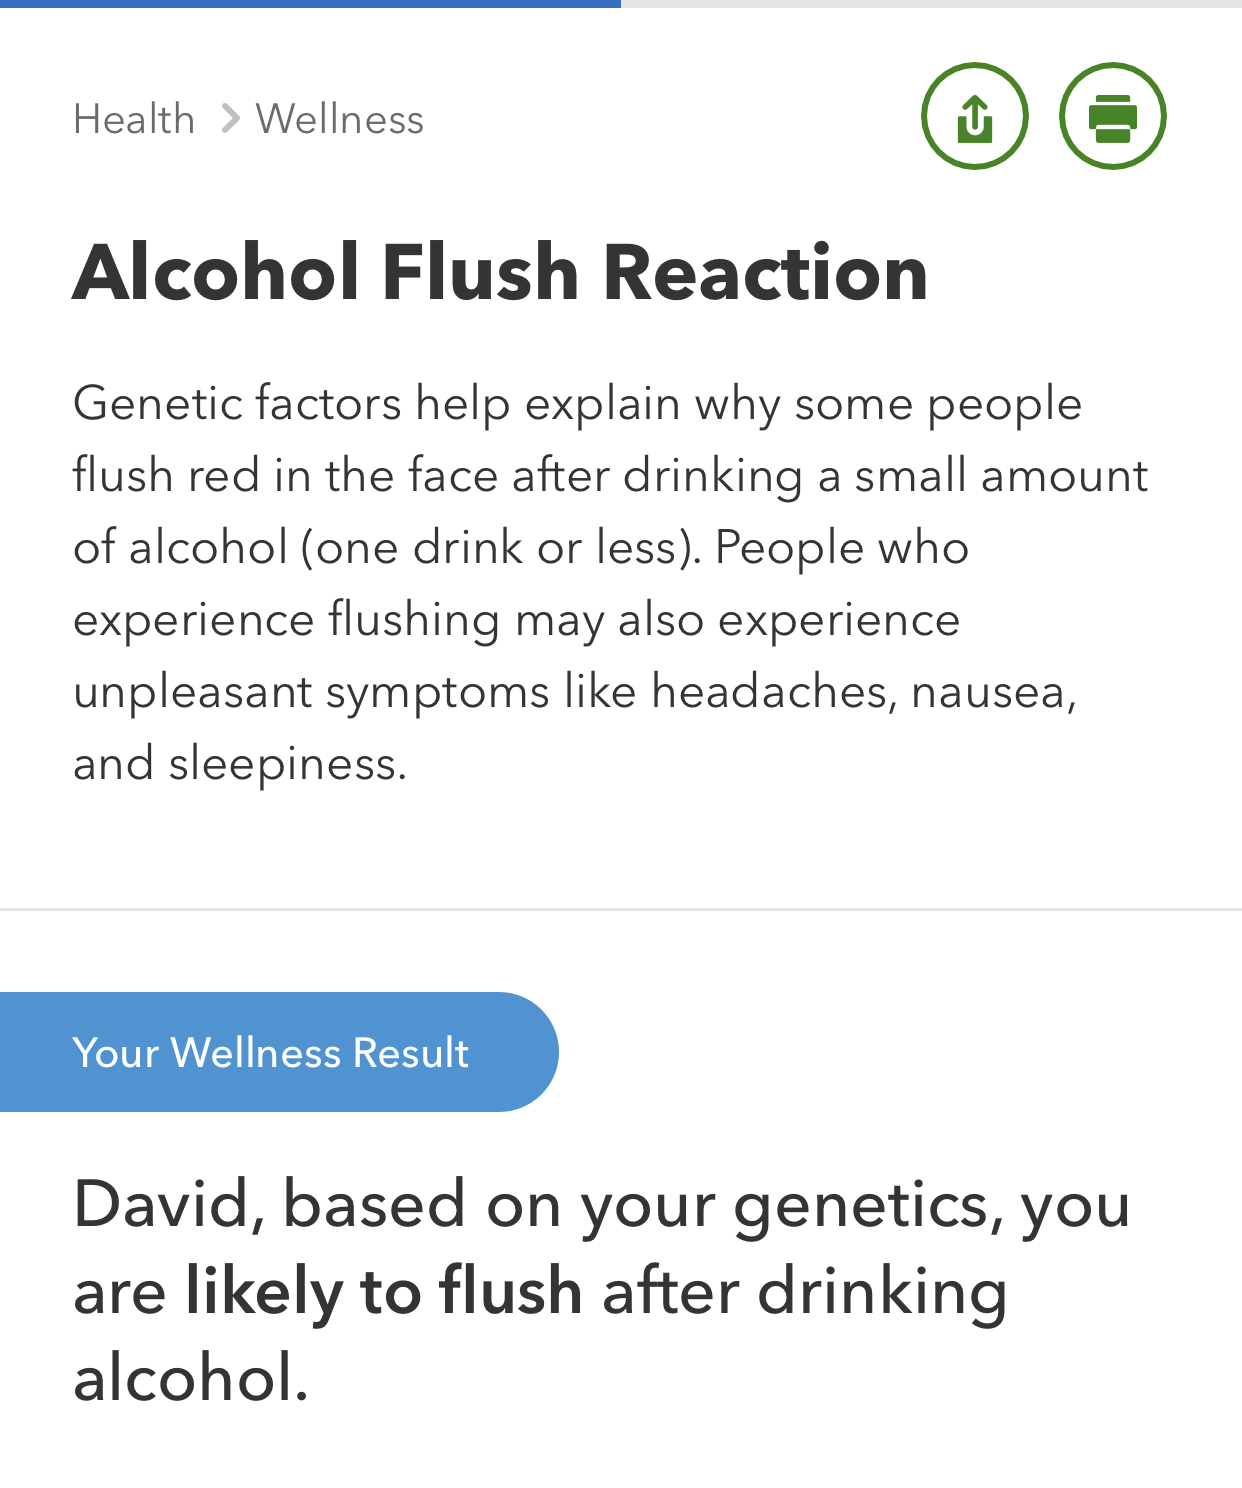 Well 23 & Me got this right, I definitely turn red when I drink..but what else about my health?